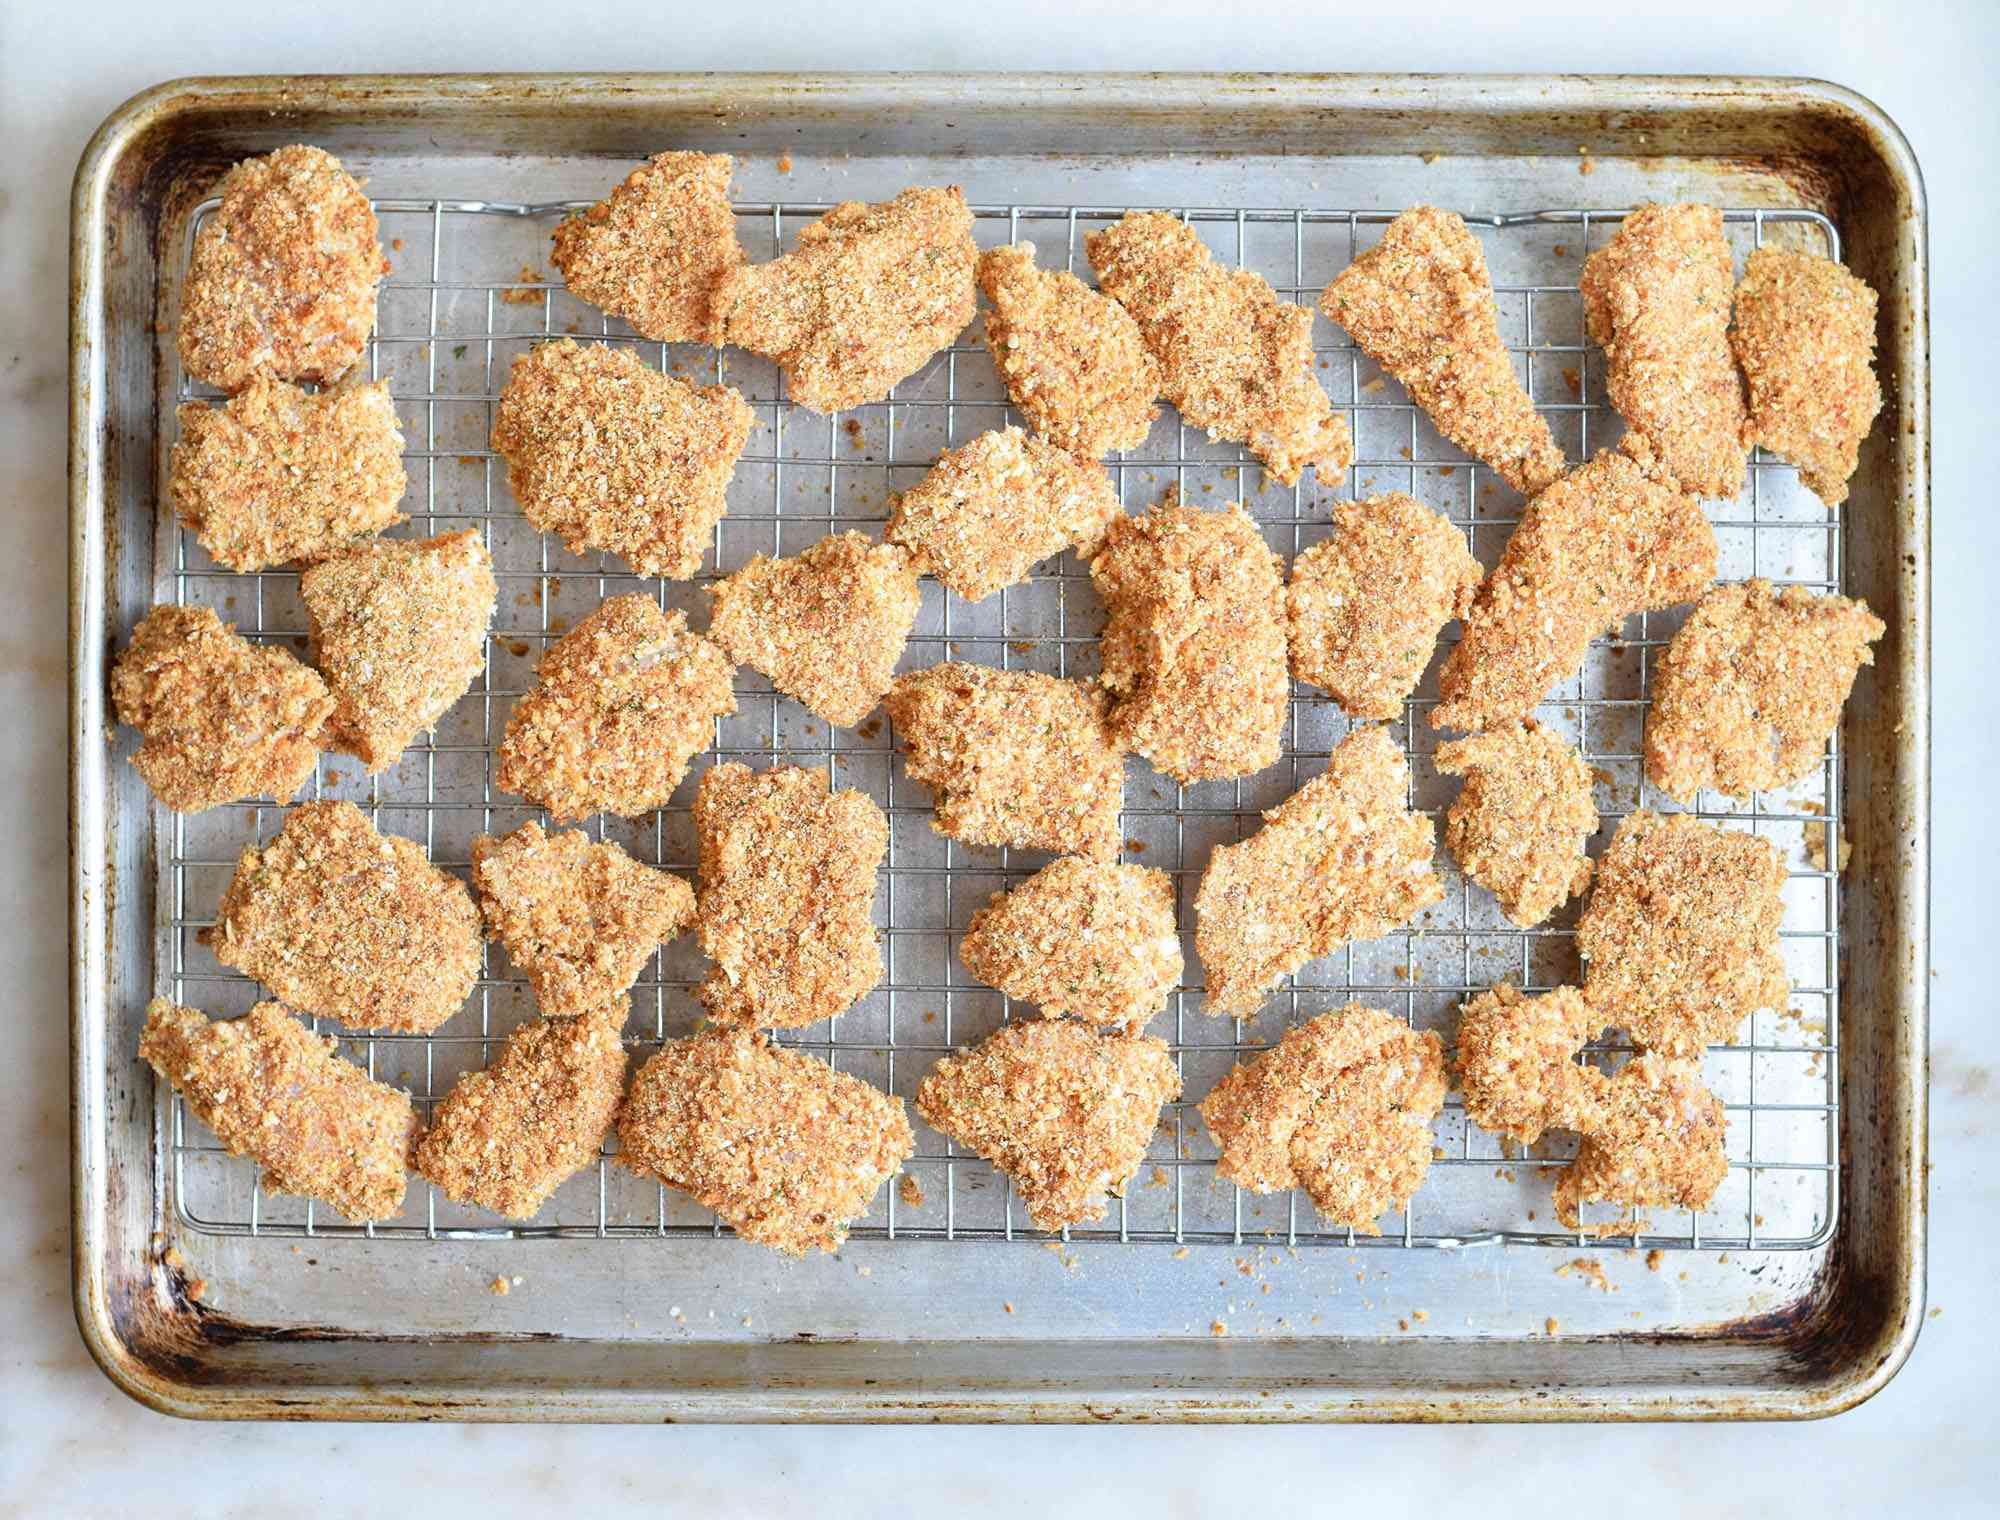 chicken nuggets on a baking rack